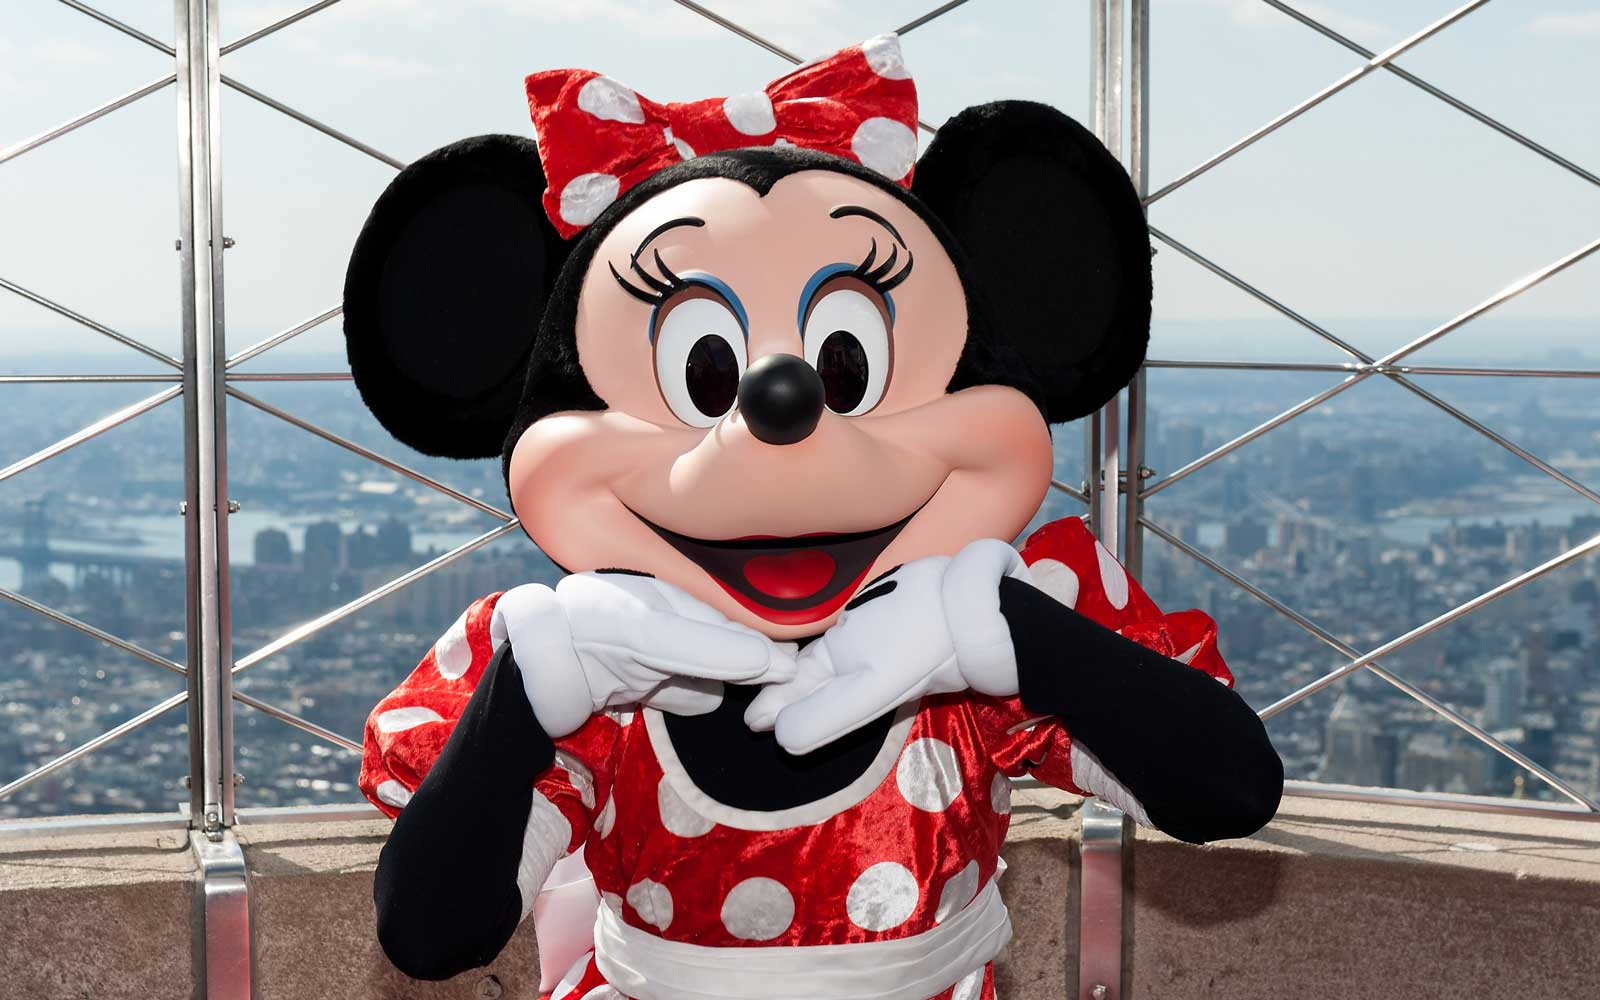 Minnie Mouse at the Empire State building